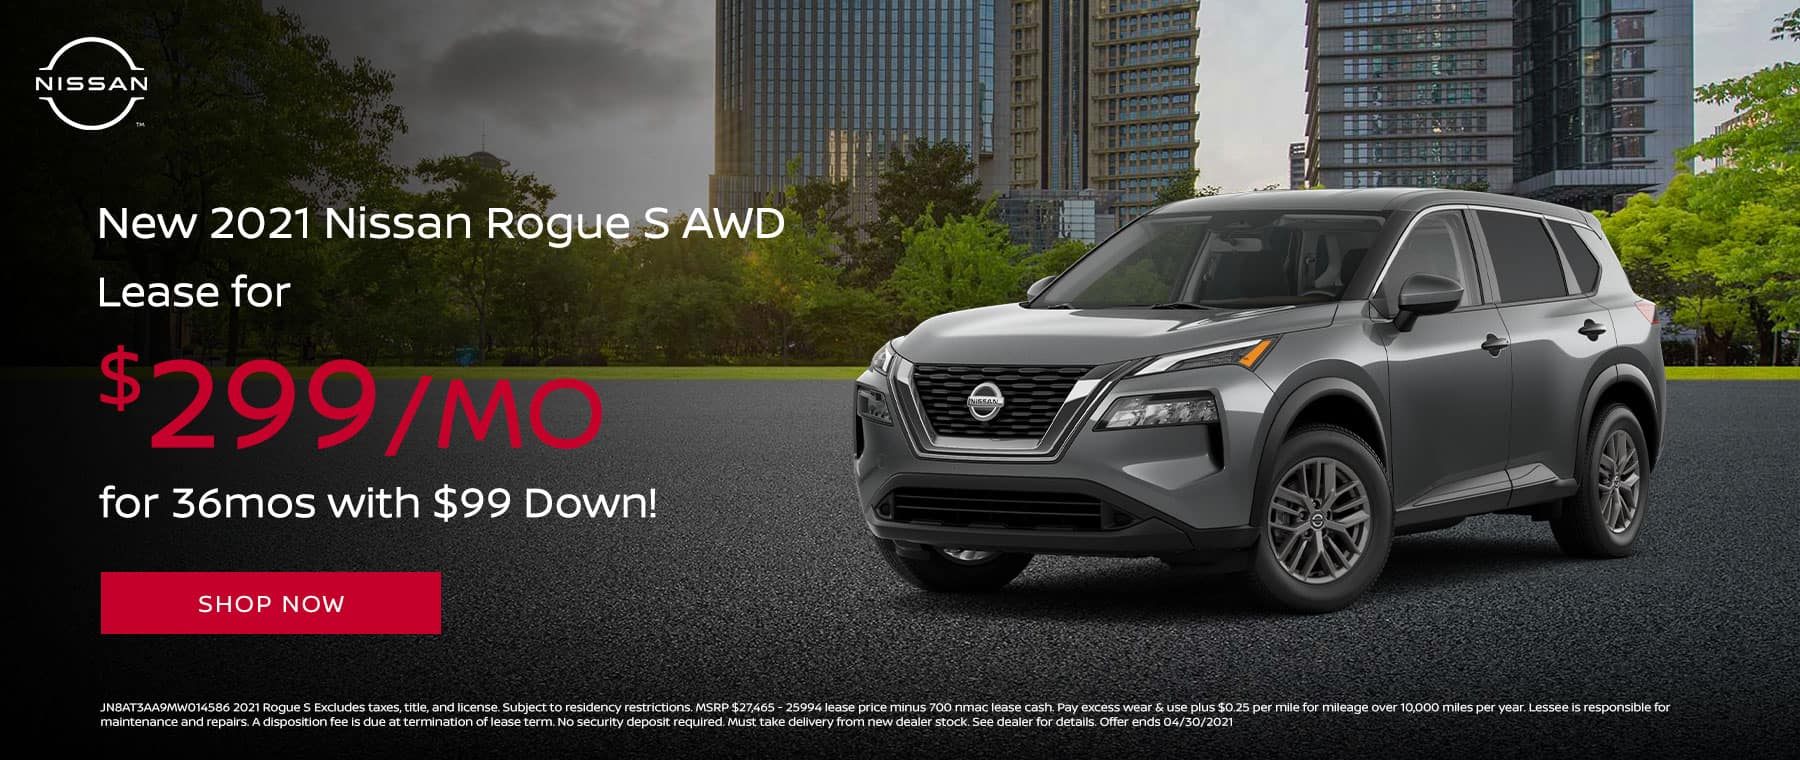 Lease a New 2021 Nissan Rogue S AWD for $299/mo for 36mos with $99 Down!